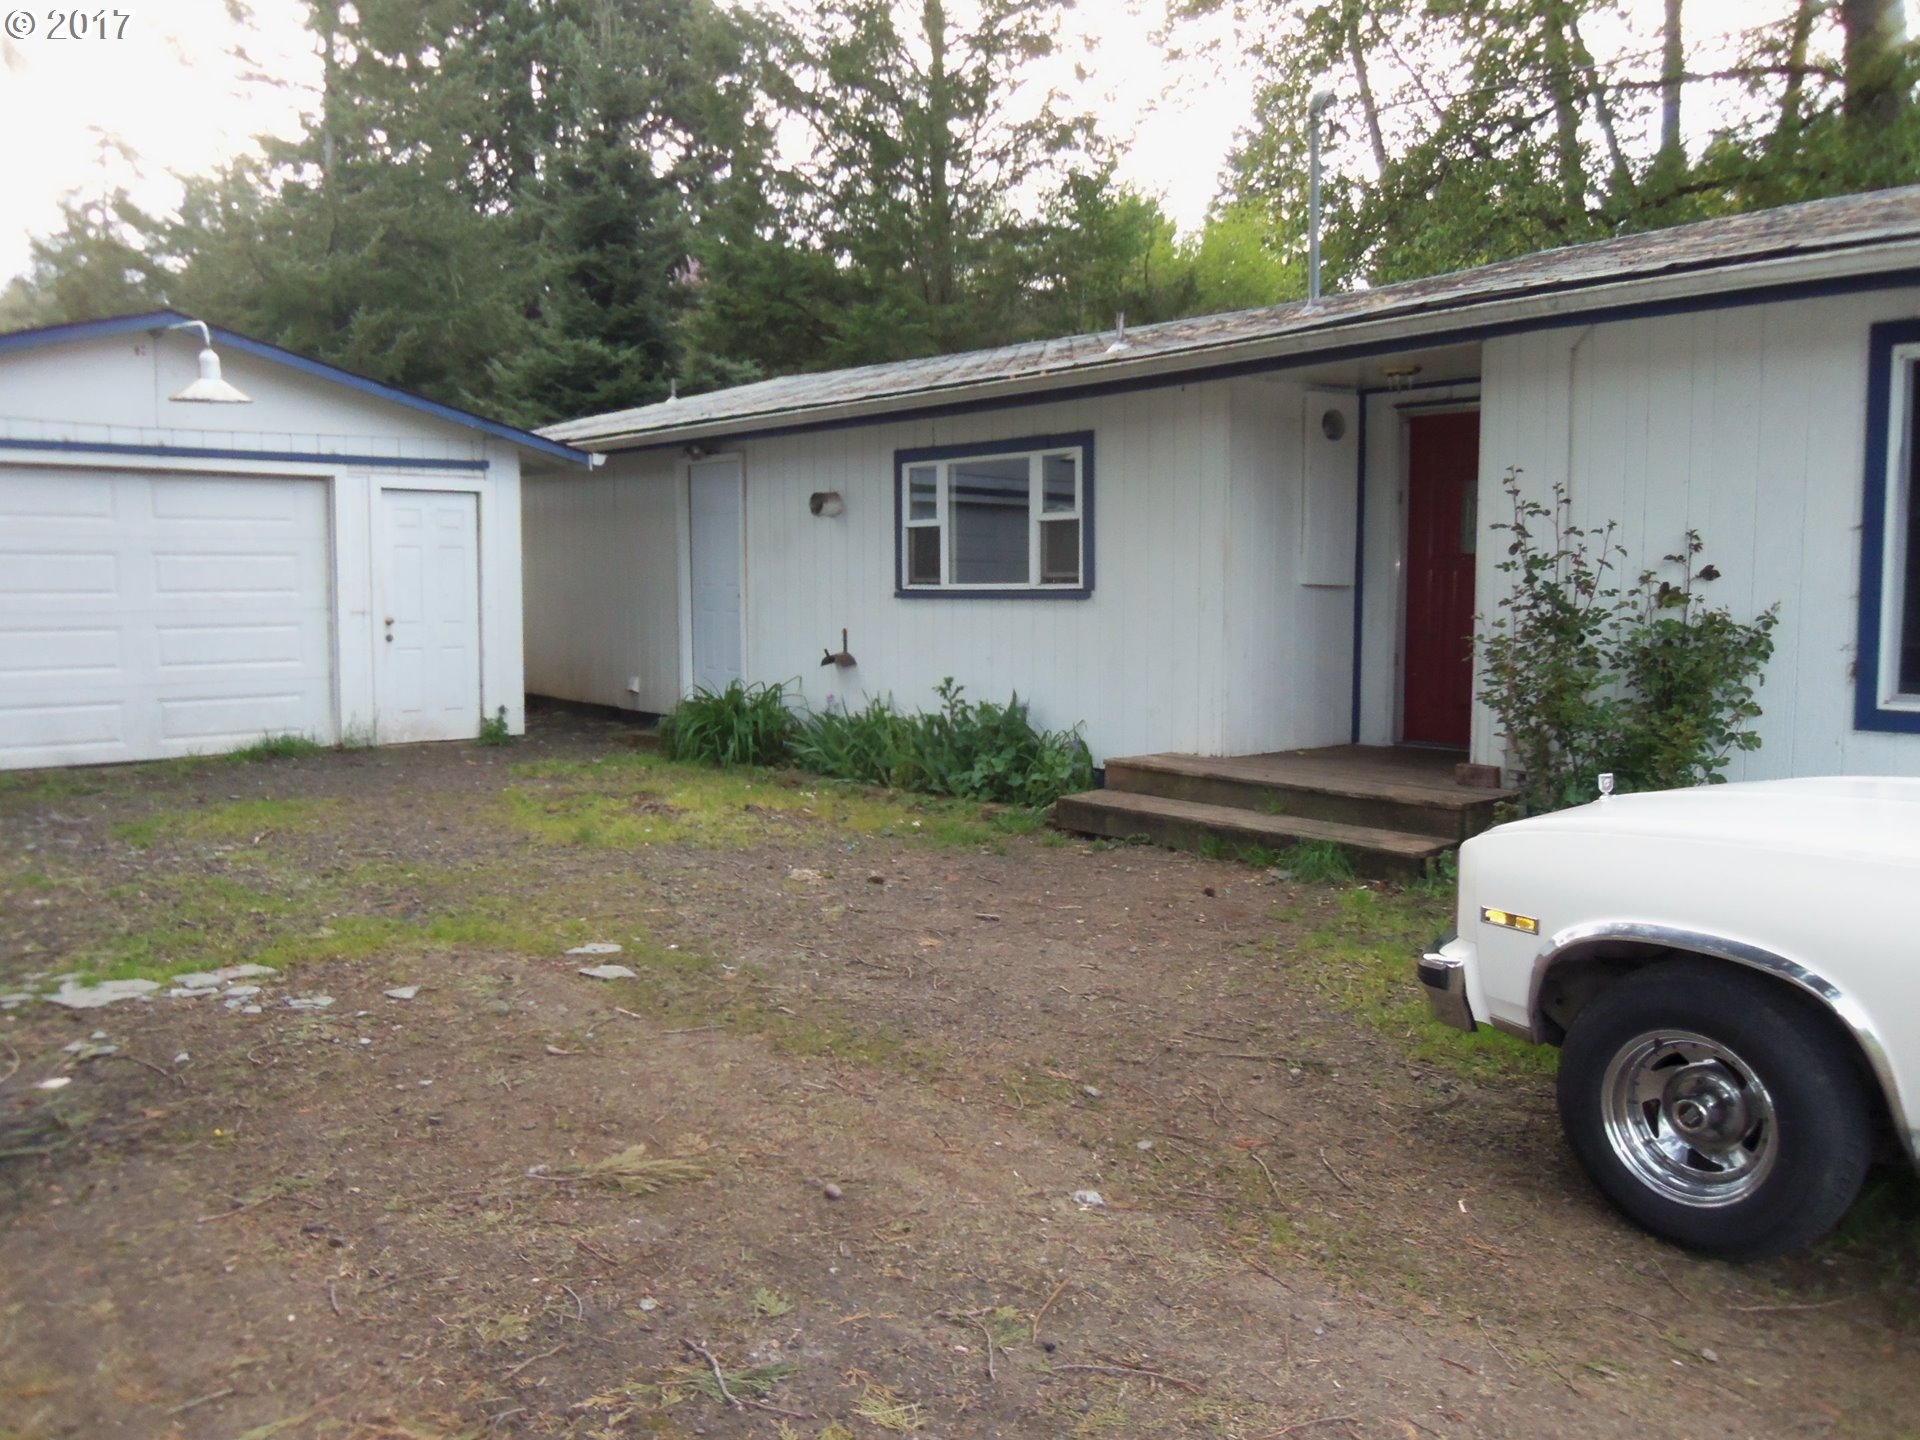 139 N P ST, Cottage Grove, OR 97424